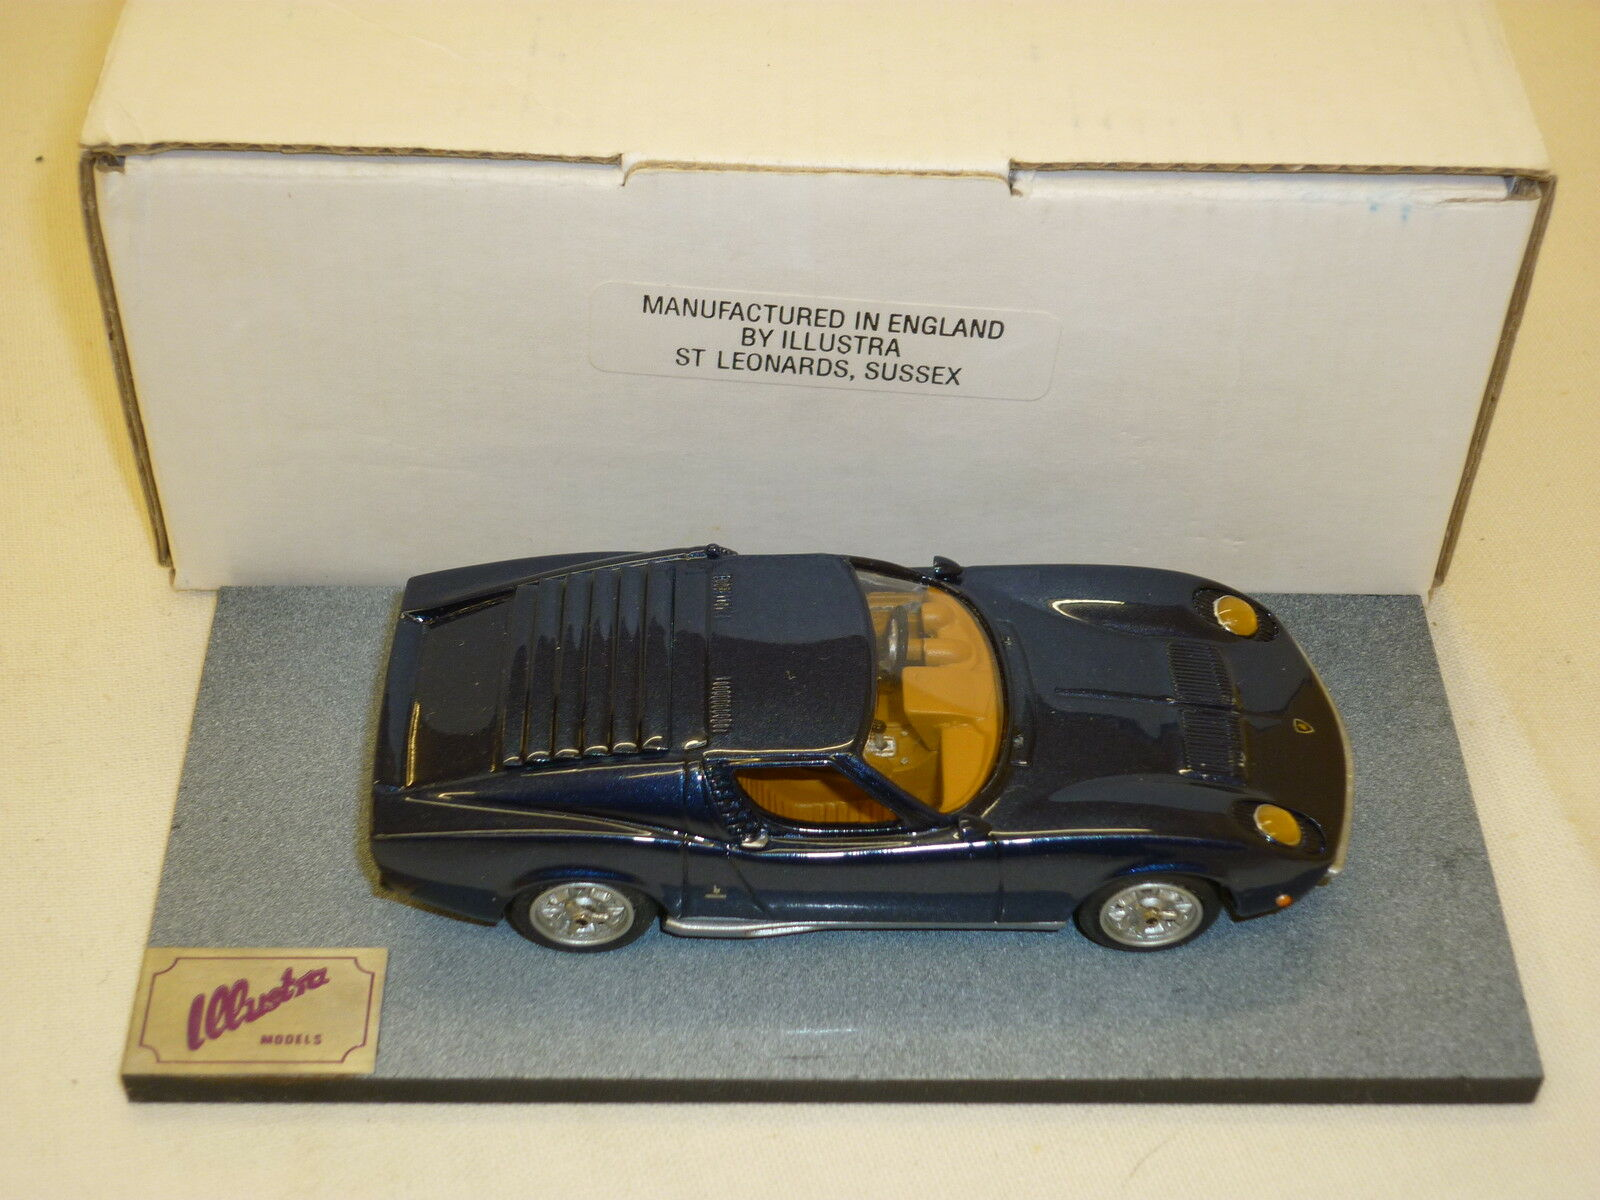 A Illustra models of a Lamborghini MIURA. bluee, boxed